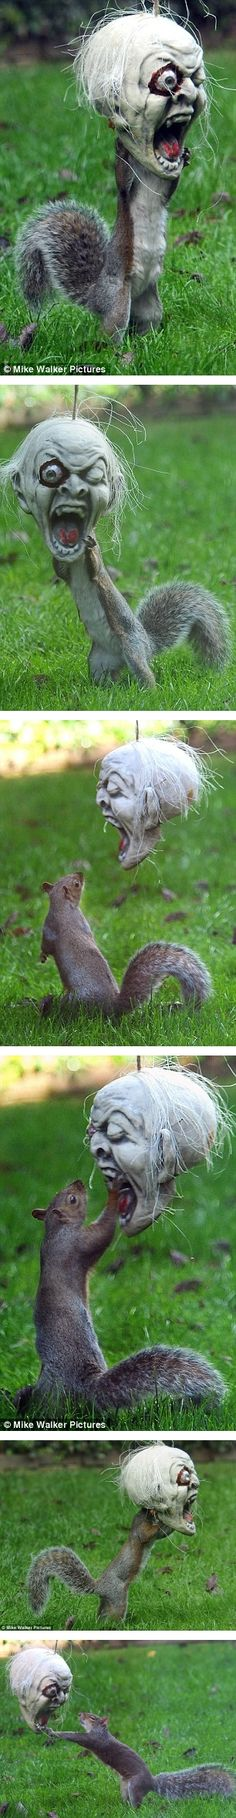 "Fake -  ""Squirrel terrorizes neighborhood."" - The true story is as follows: The grey squirrel turned up in the garden of Vicky Freeman's home in Fareham, Hamshire, and made short work of the treats she'd hidden inside the  macabre mask.The 54-year-old grandmother said: ""I always hang stuff up in my garden for the kids at Halloween but was surprised to see a squirrel so fascinated by the macabre skull."" I included the series of images. He never left the yard............"